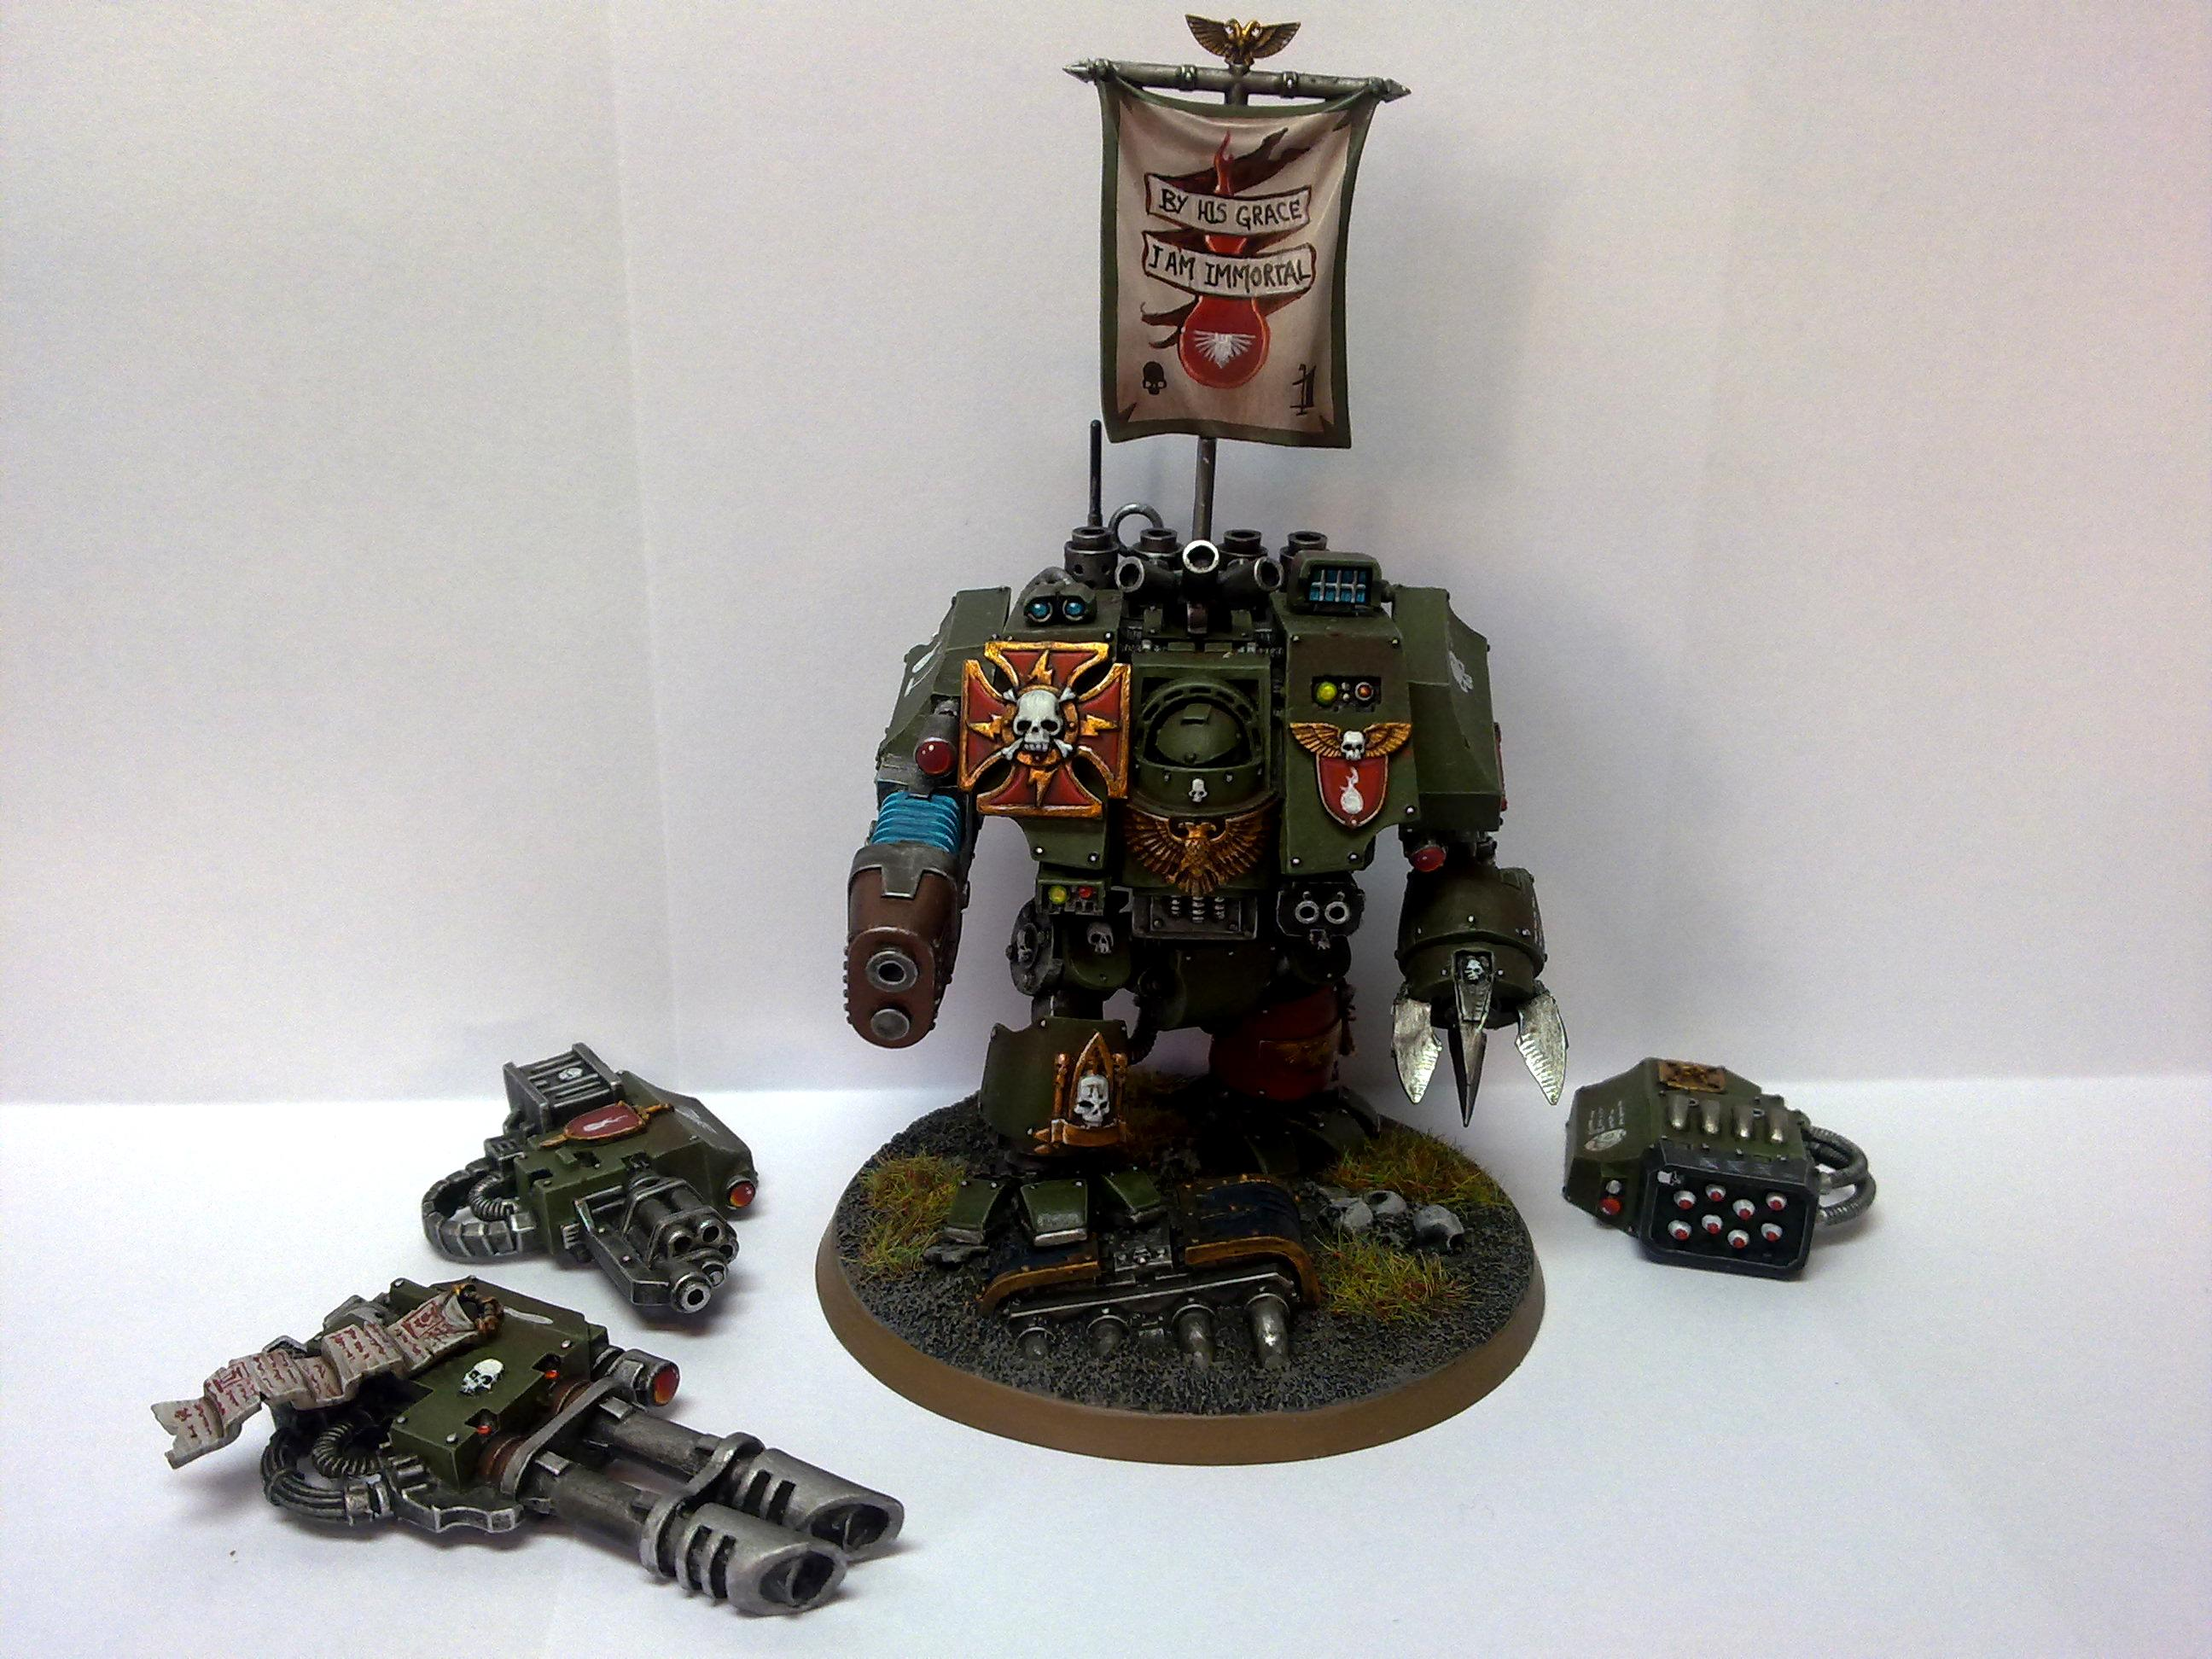 Devil Dogs, Dreadnought, Magnet, Space Marines